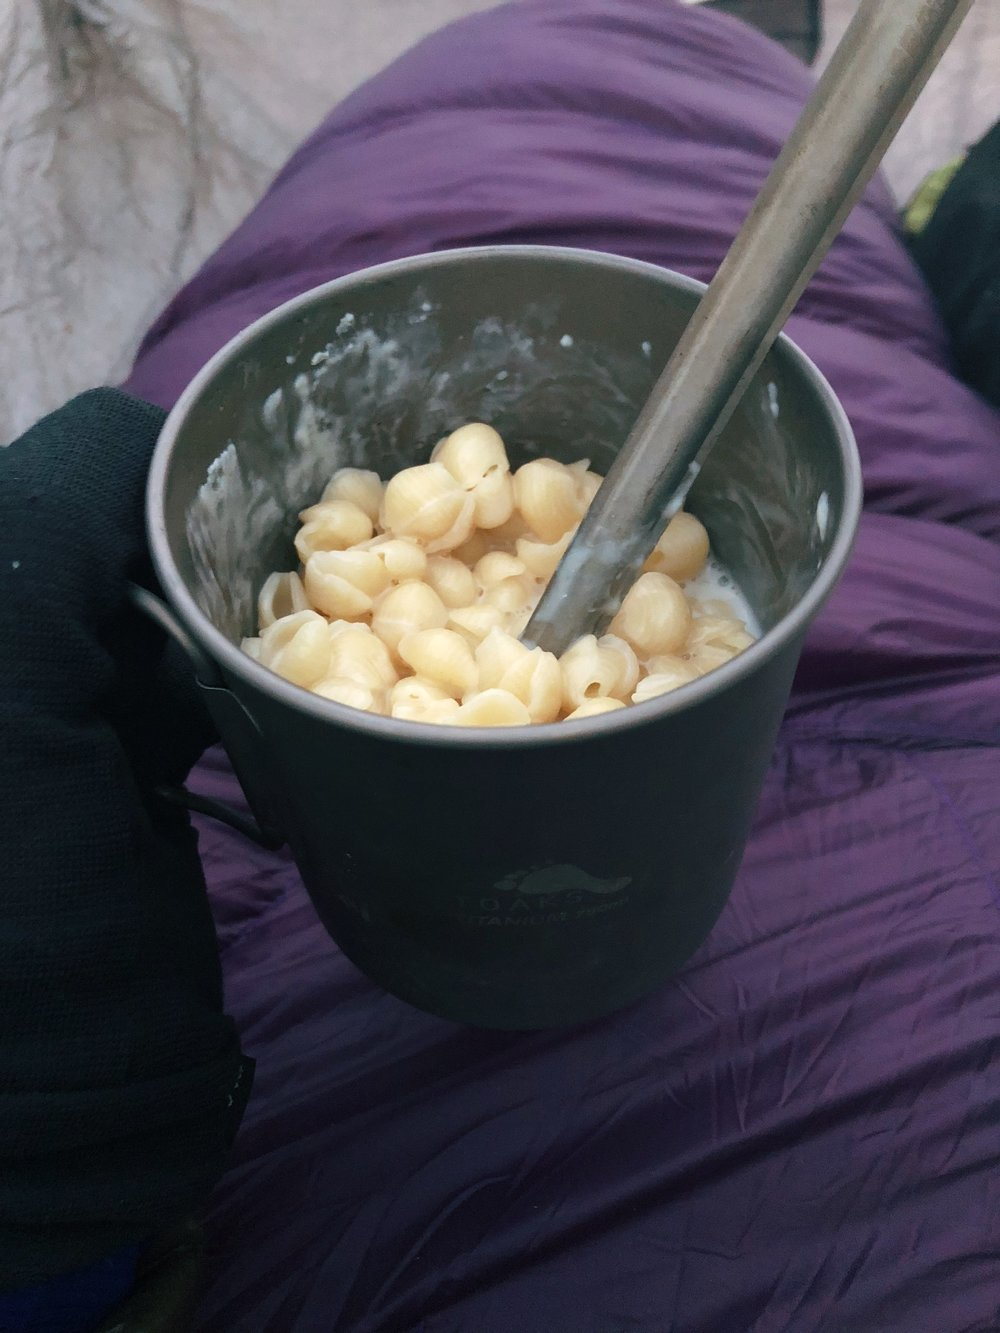 Eating my last meal - Annie's white cheddar Mac - in my quilt in my tent wearing all of my layers